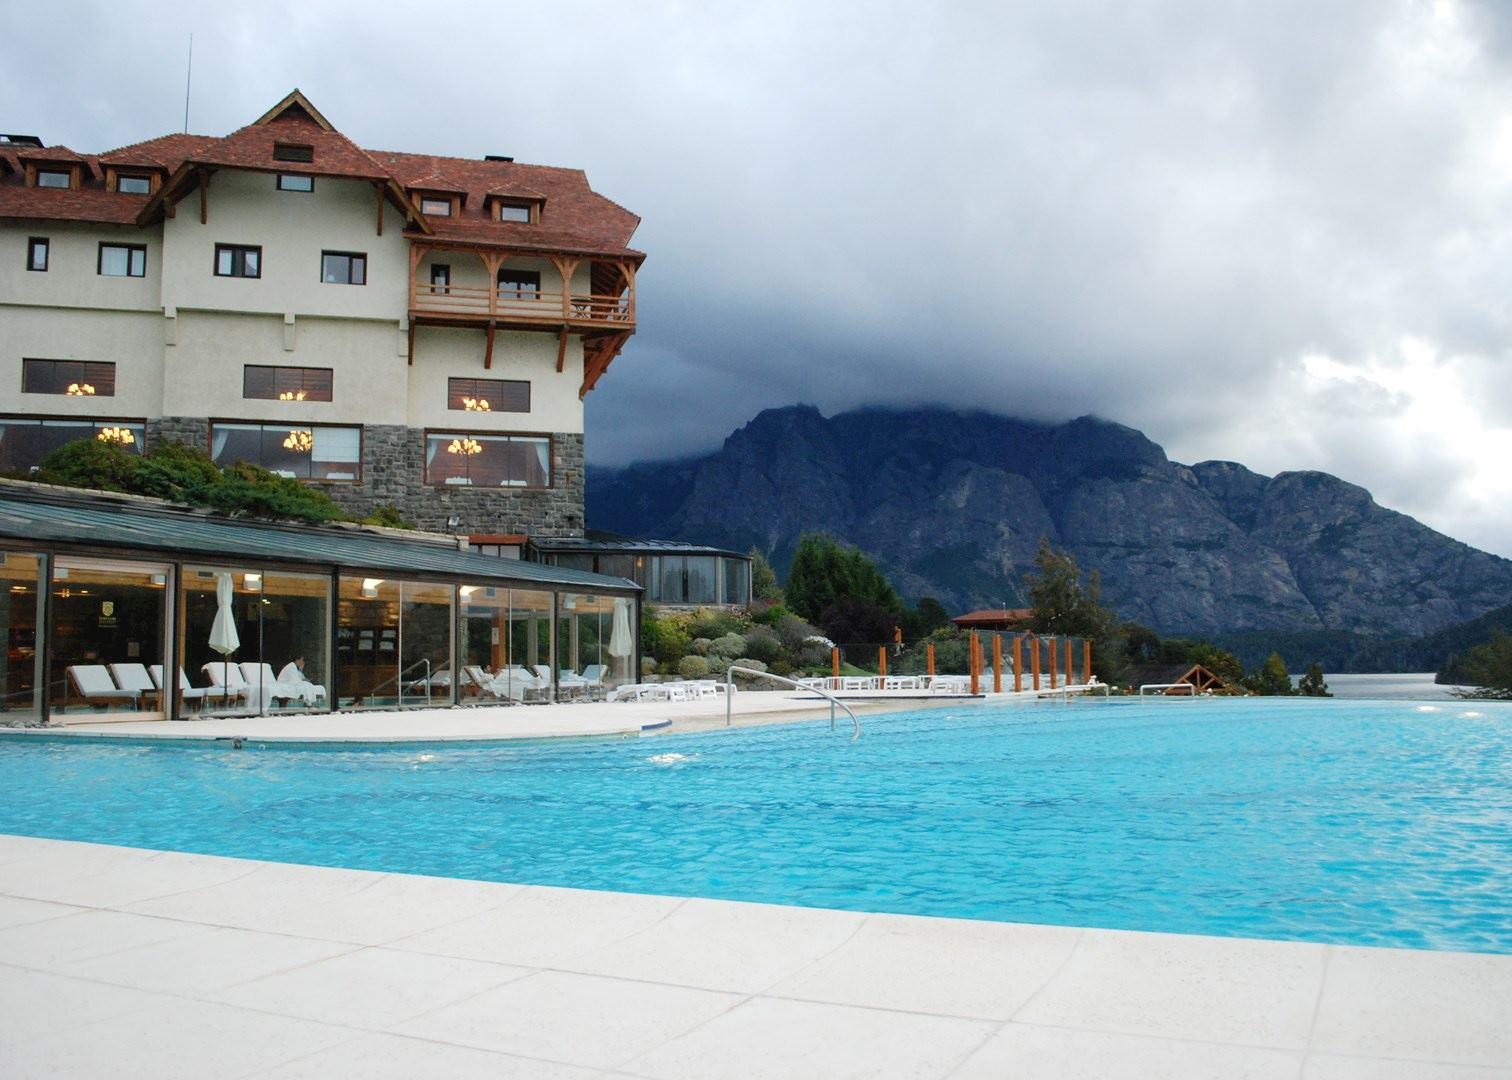 Llao Llao Hotels In The Lake District Audley Travel